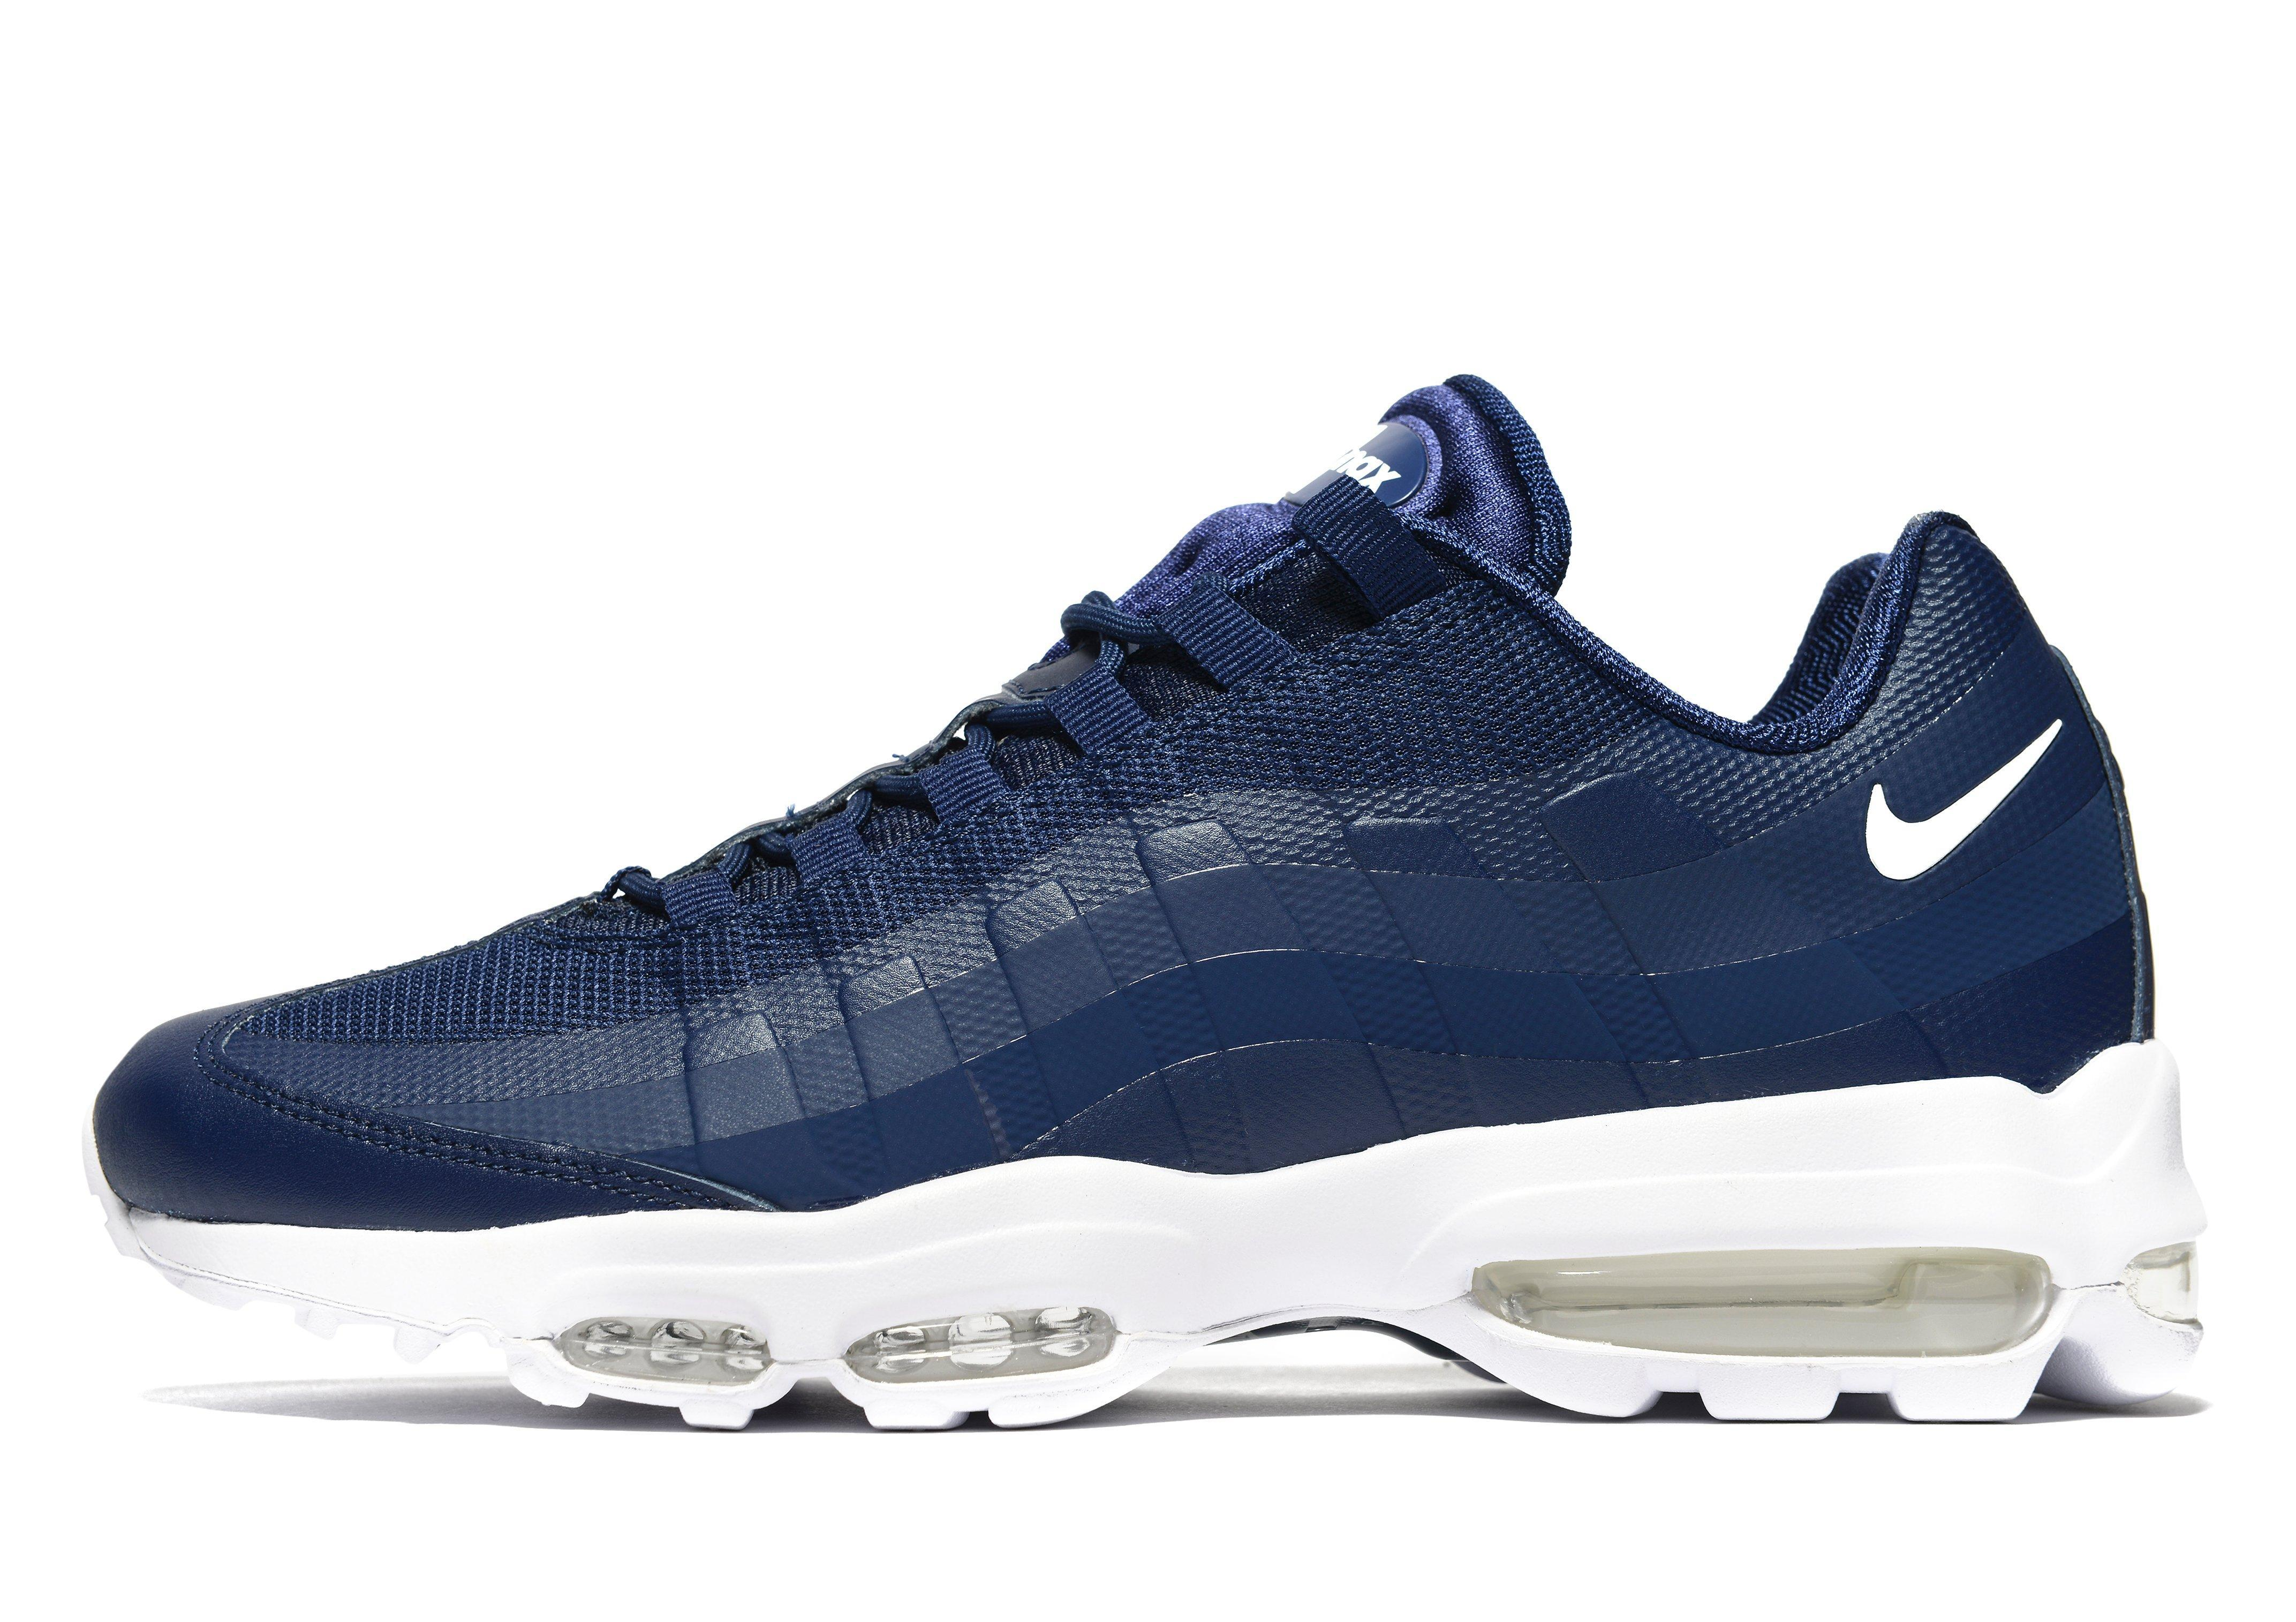 Nike Synthetic Air Max 95 Ultra Essential in Blue for Men - Lyst